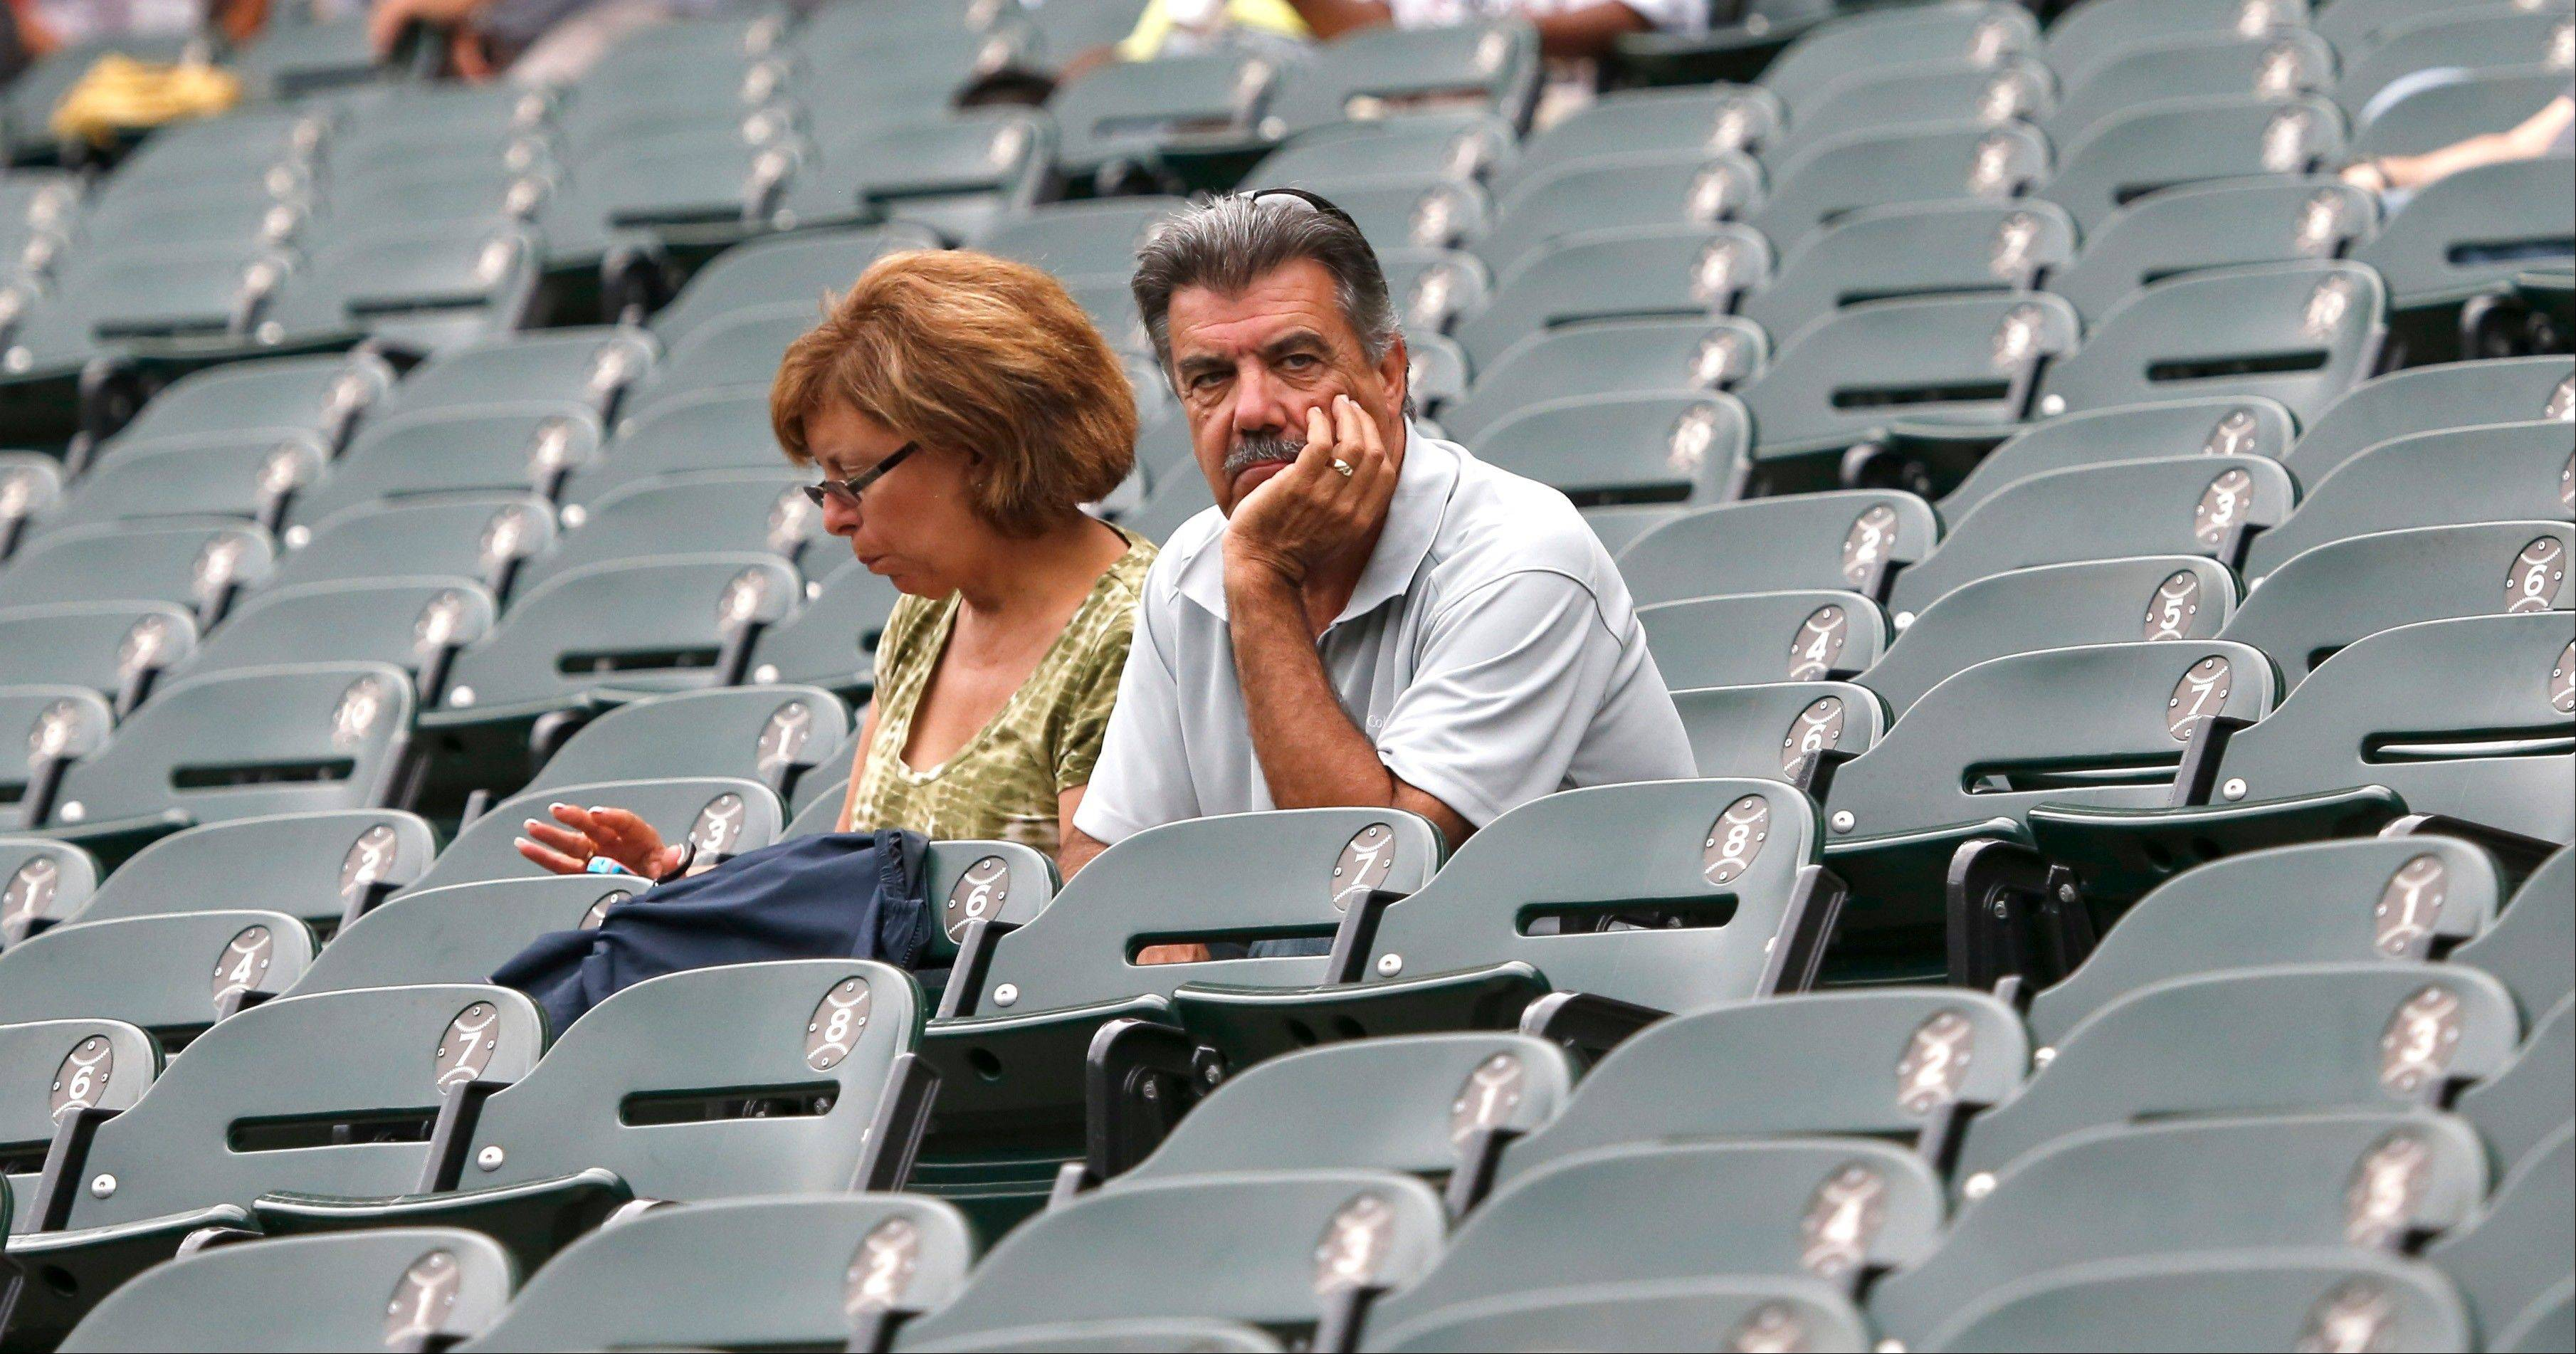 Sox attendance continues its downward spiral